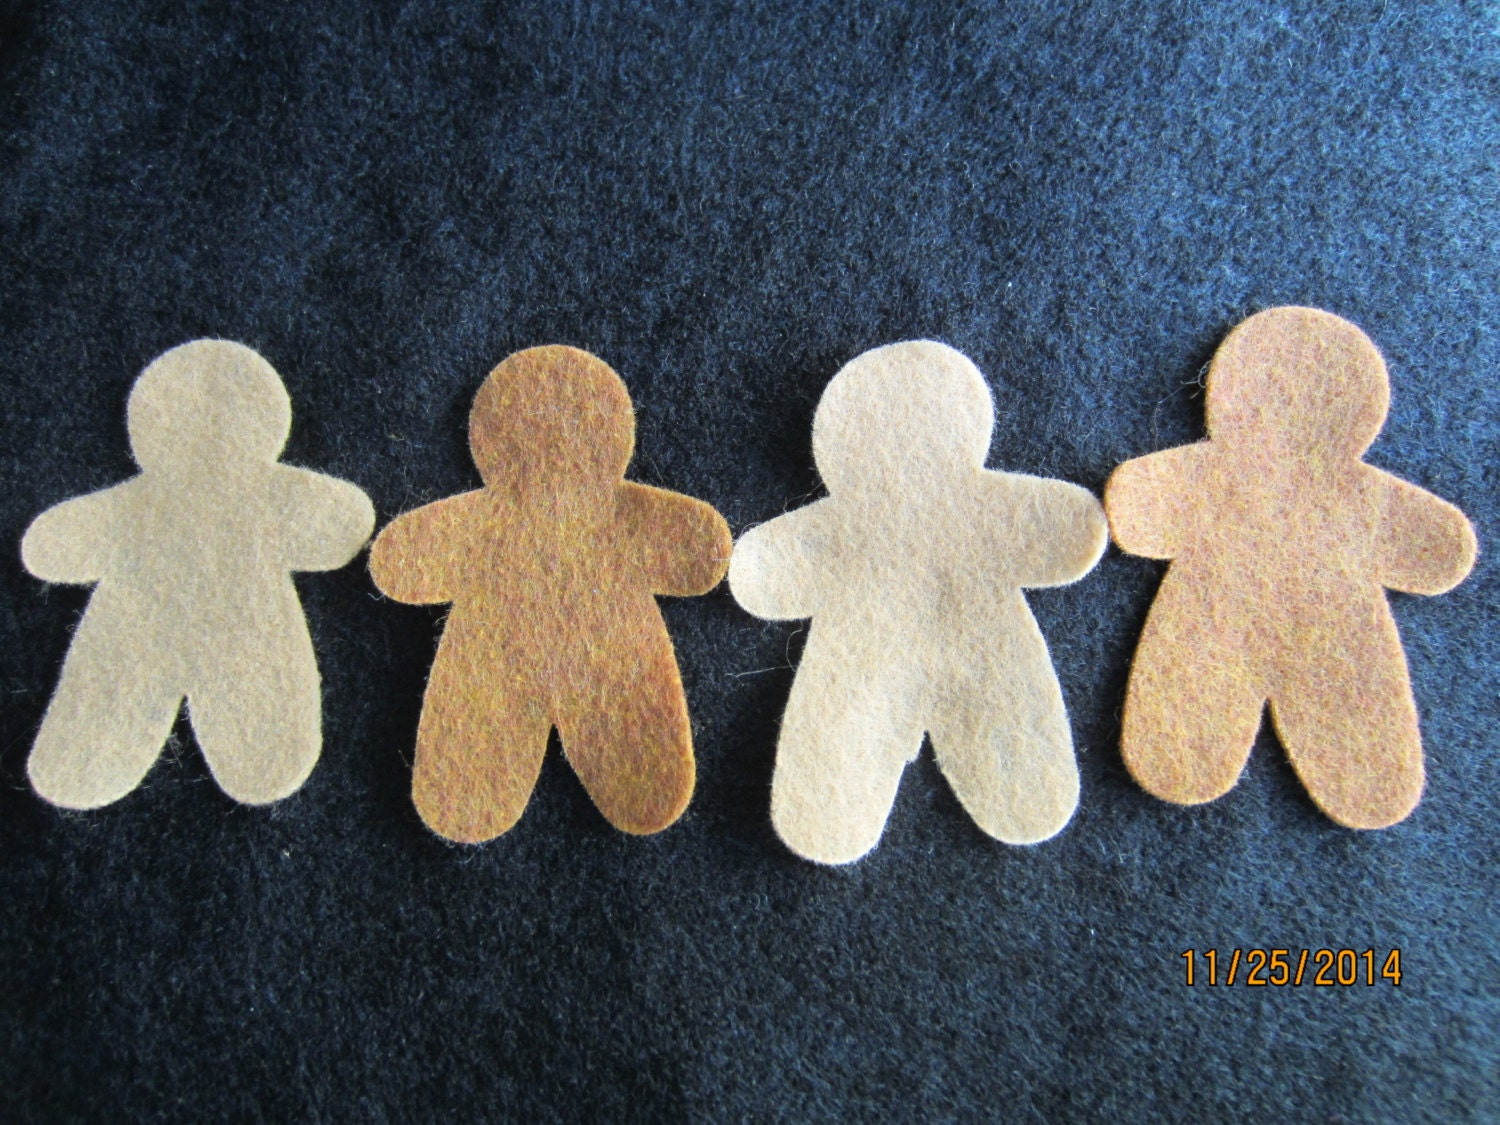 Gingerbread man ornament craft - Felt Gingerbread Men Ornaments Diy Kits For Christmas Crafts Parties Planner Accessories